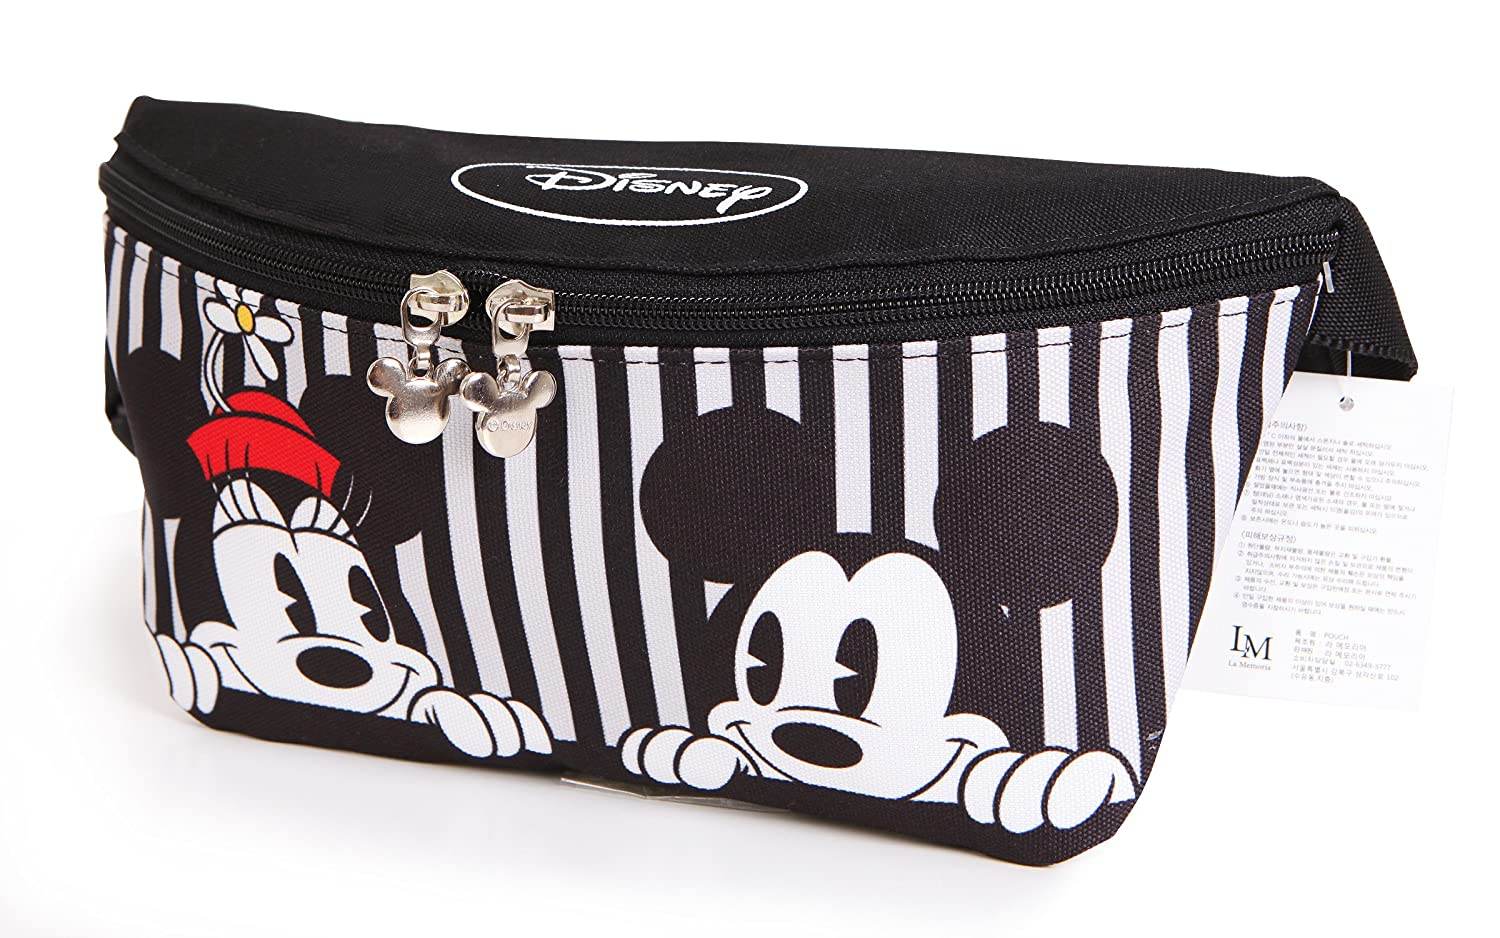 Disney Mickey Minnie Mouse Zippered Waist Fanny Pack Belly Bag for Travel Belt Bag (Stripe Mickey Minnie) La Memoria